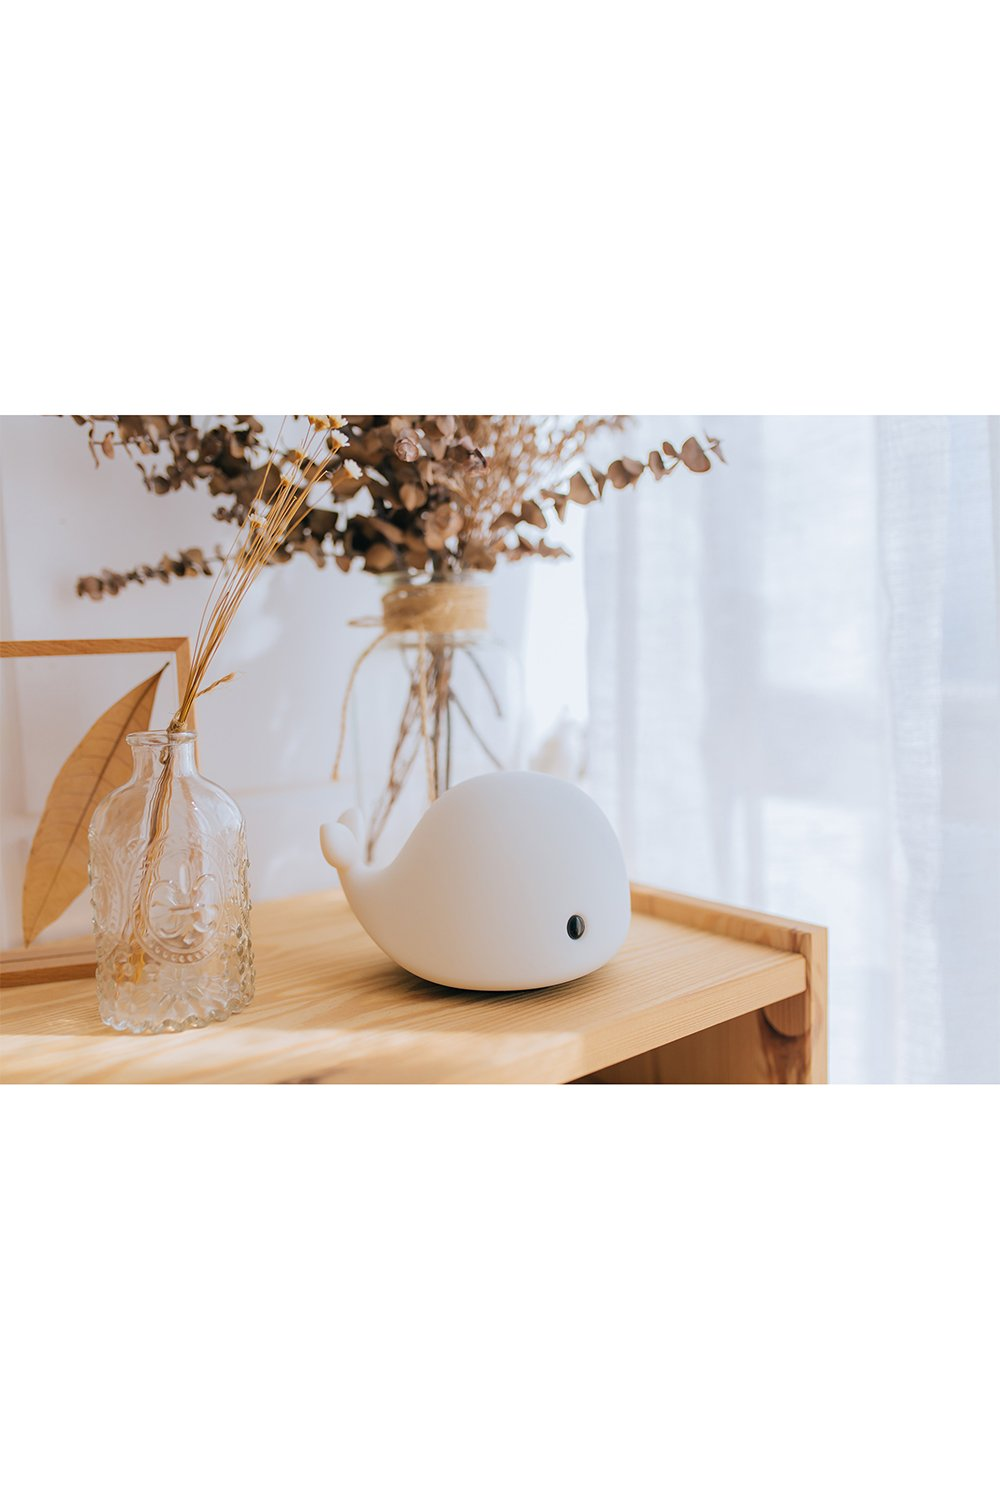 Innerest Baby Children Night Light Nursery Breastfeeding Mood Lamp Touch Control USB Rechargeable Various Shapes One Size, Angola Rabbit